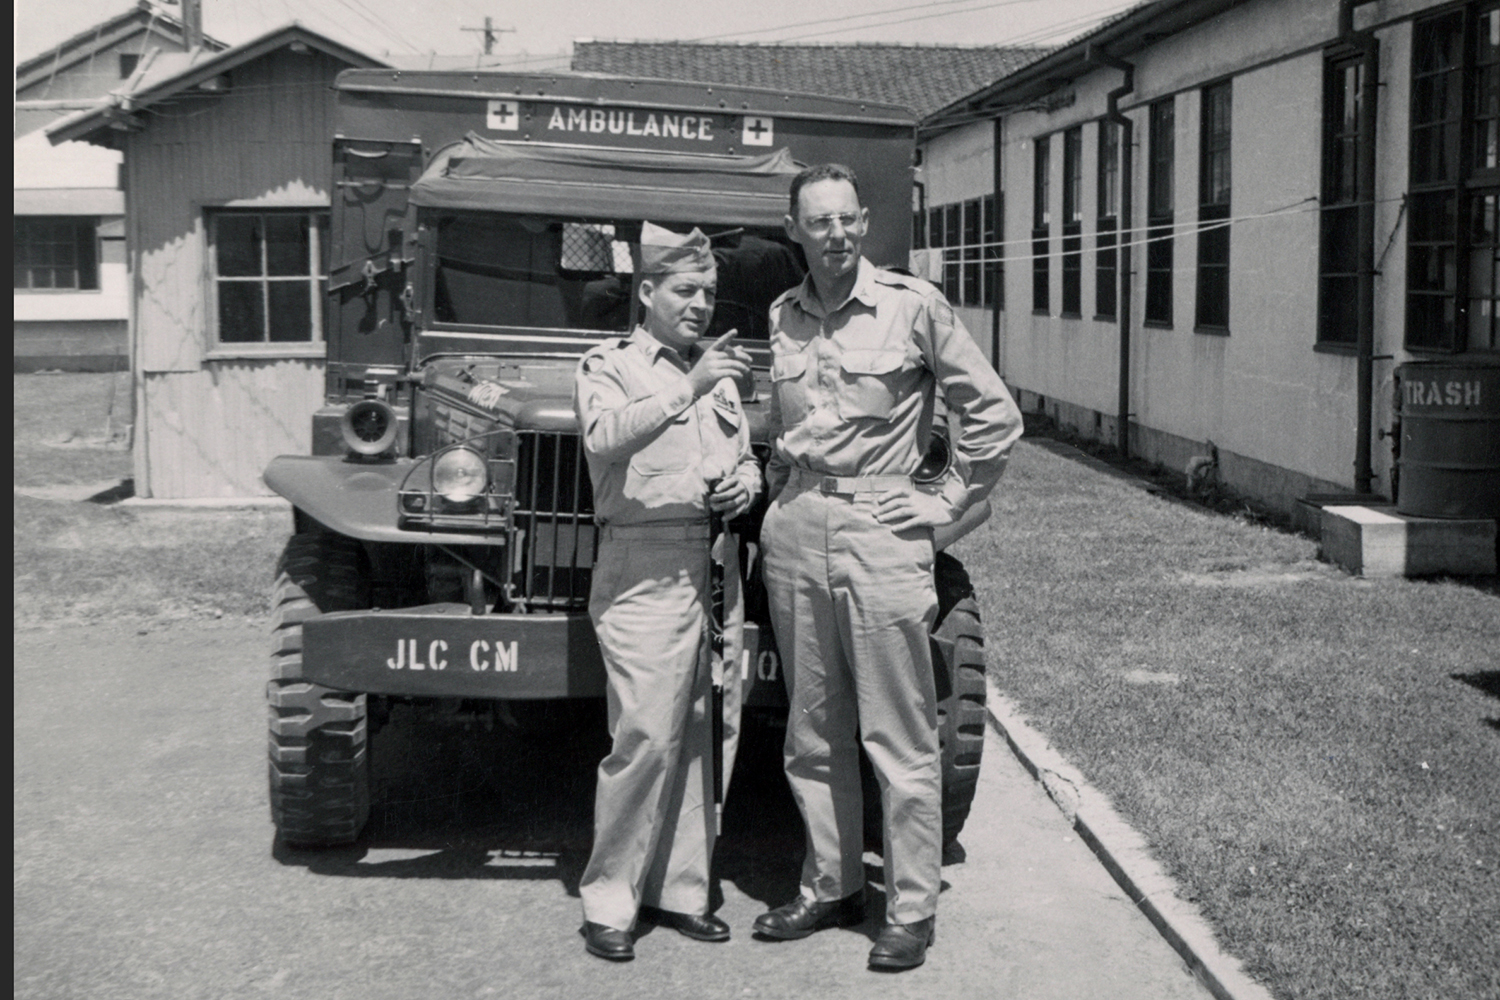 153- George Butler in front of Camp Ambulance